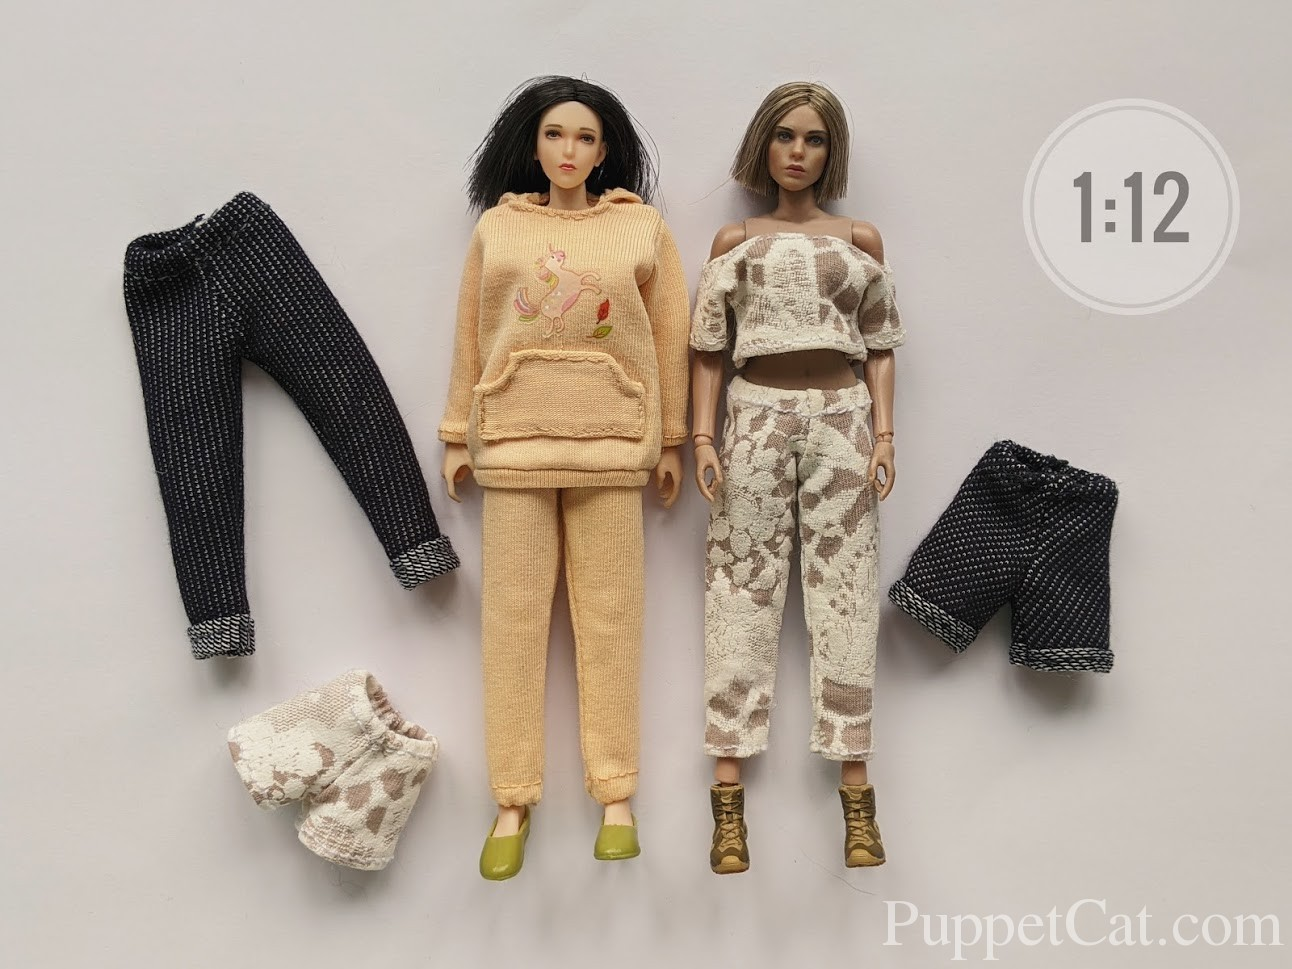 pants for dolls 1/12